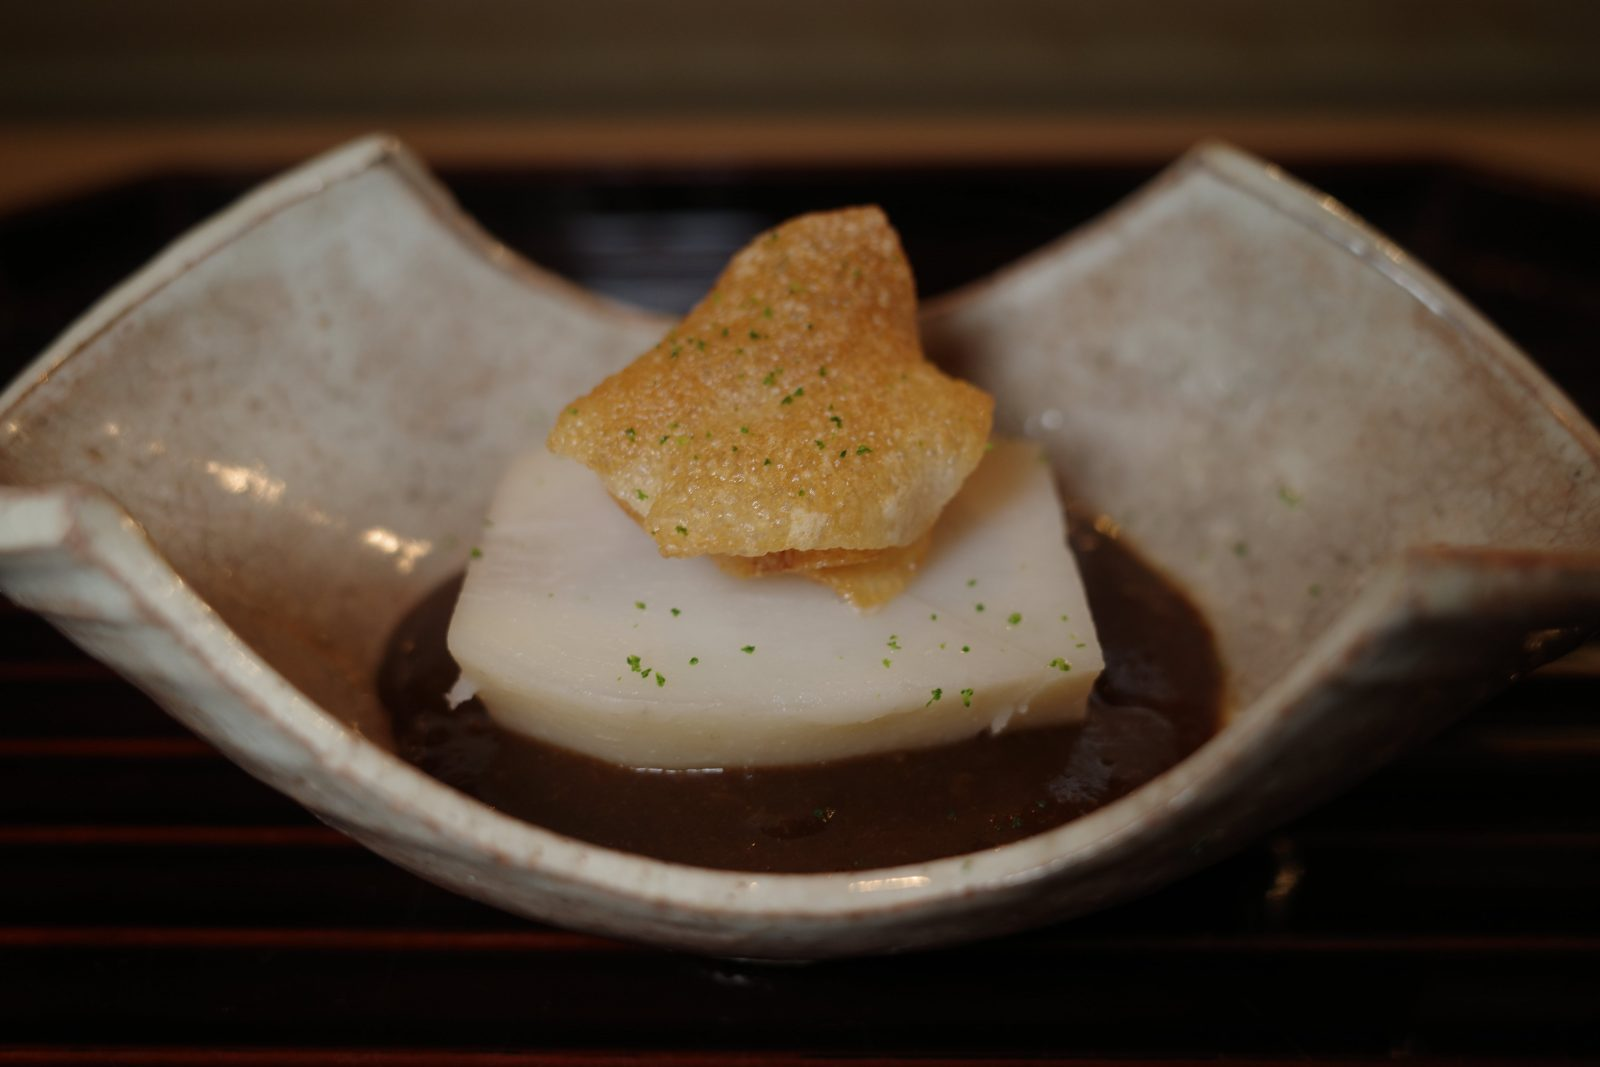 Local satoimo (Japanese taro) with ginger miso sauce, topped with saitoimo chip